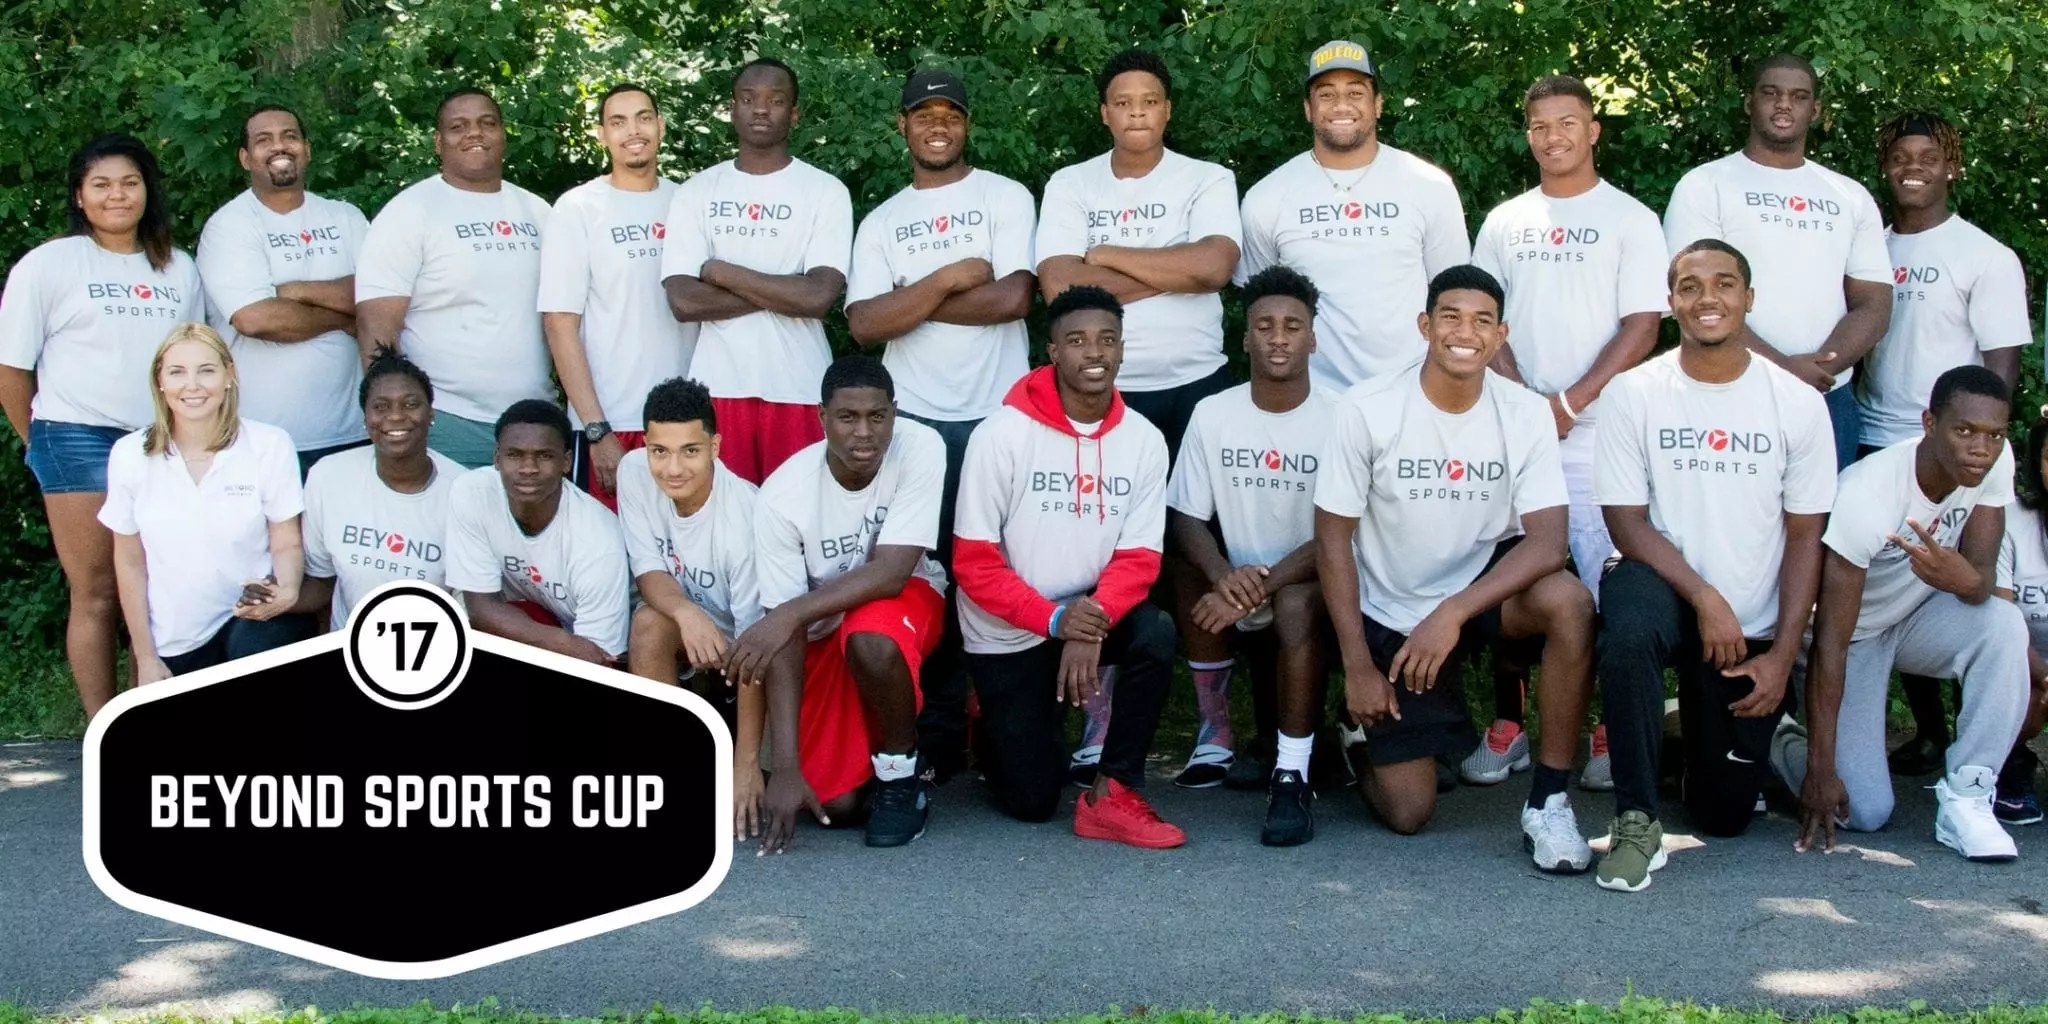 Beyond Sports Cup